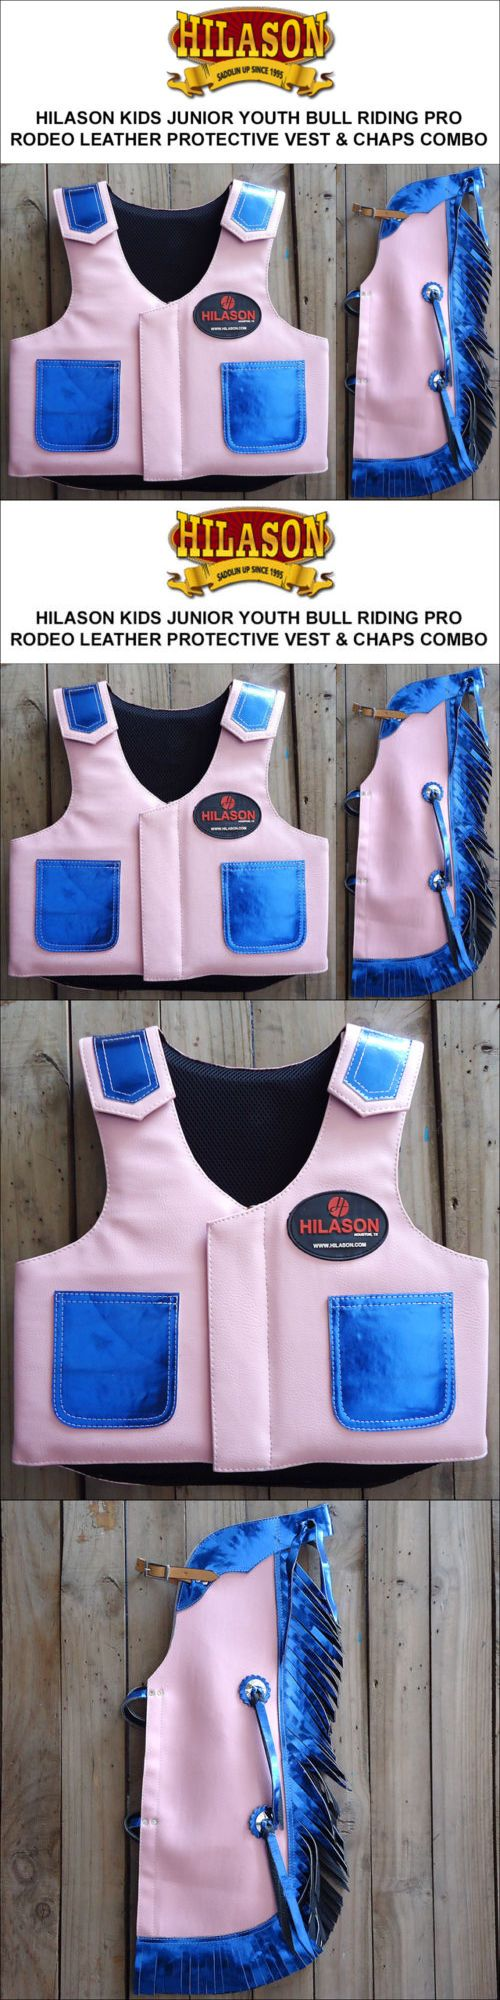 Other Protective Gear 87446: Hilason Kids Junior Youth Bull Riding Pro Rodeo Leather Protective Vest Chaps -> BUY IT NOW ONLY: $129.95 on eBay!